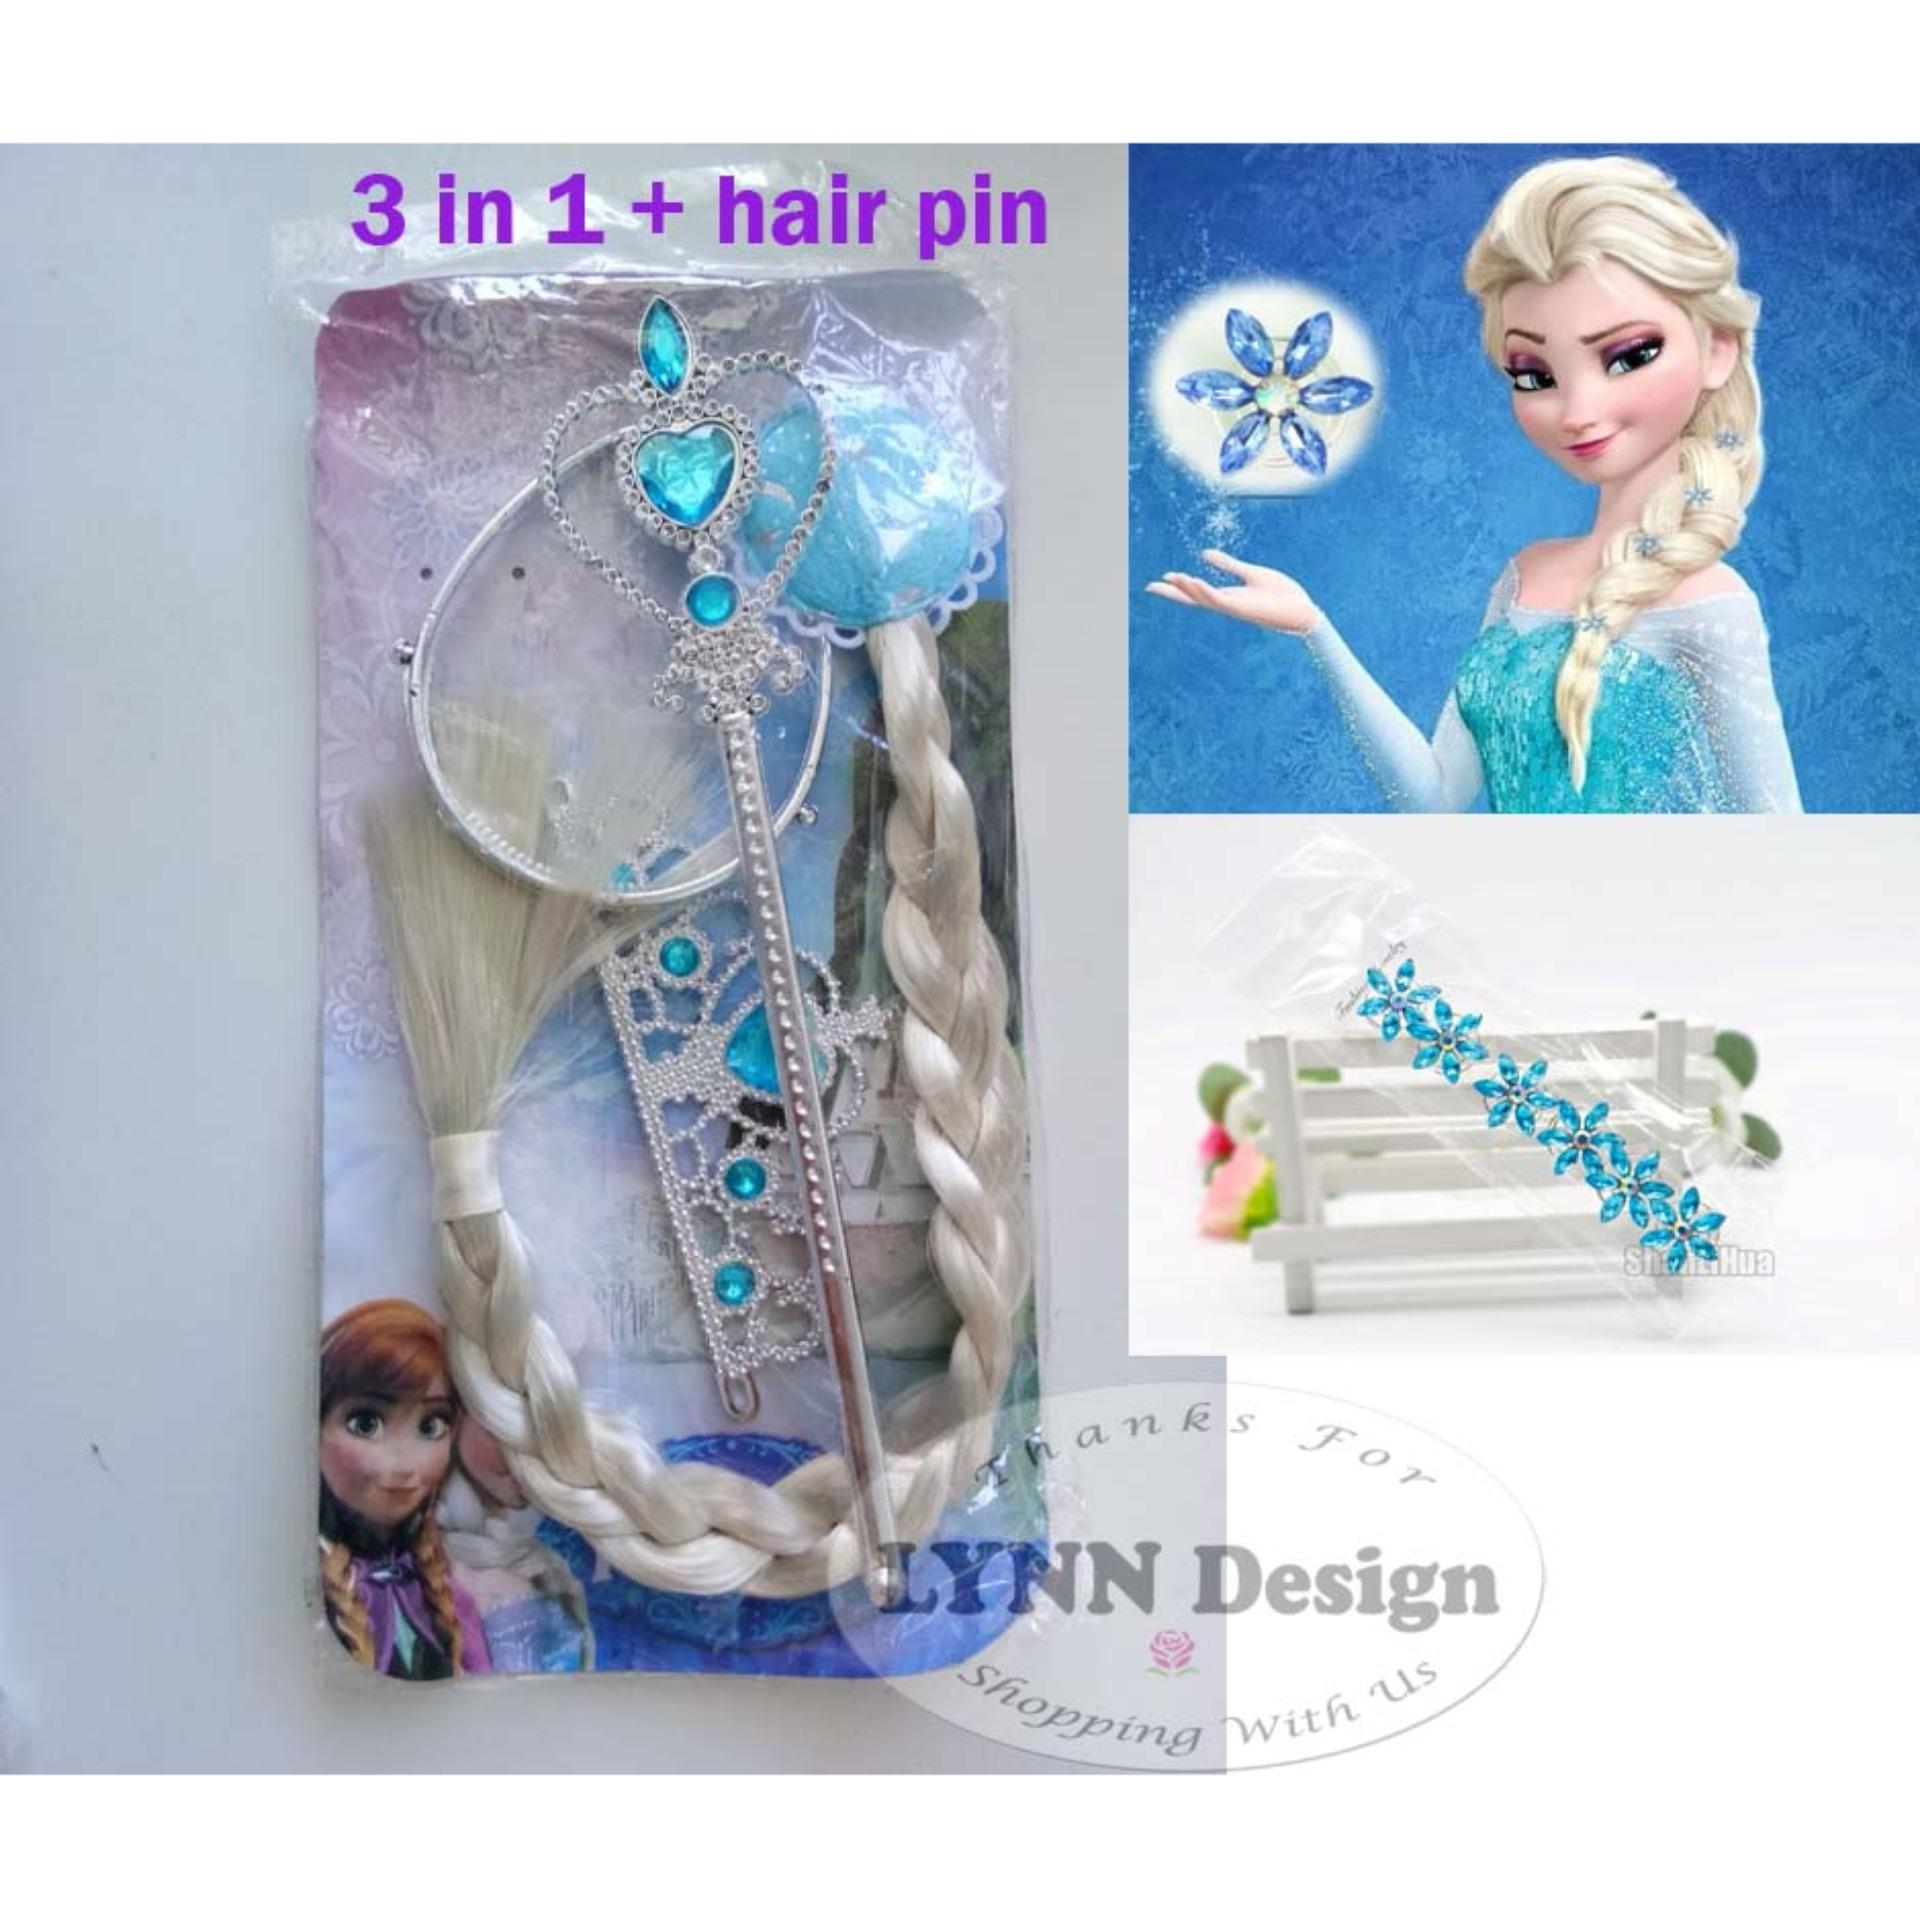 Lynn Design -  Aksesoris Frozen elsa mahkota 3in 1 + hairpin